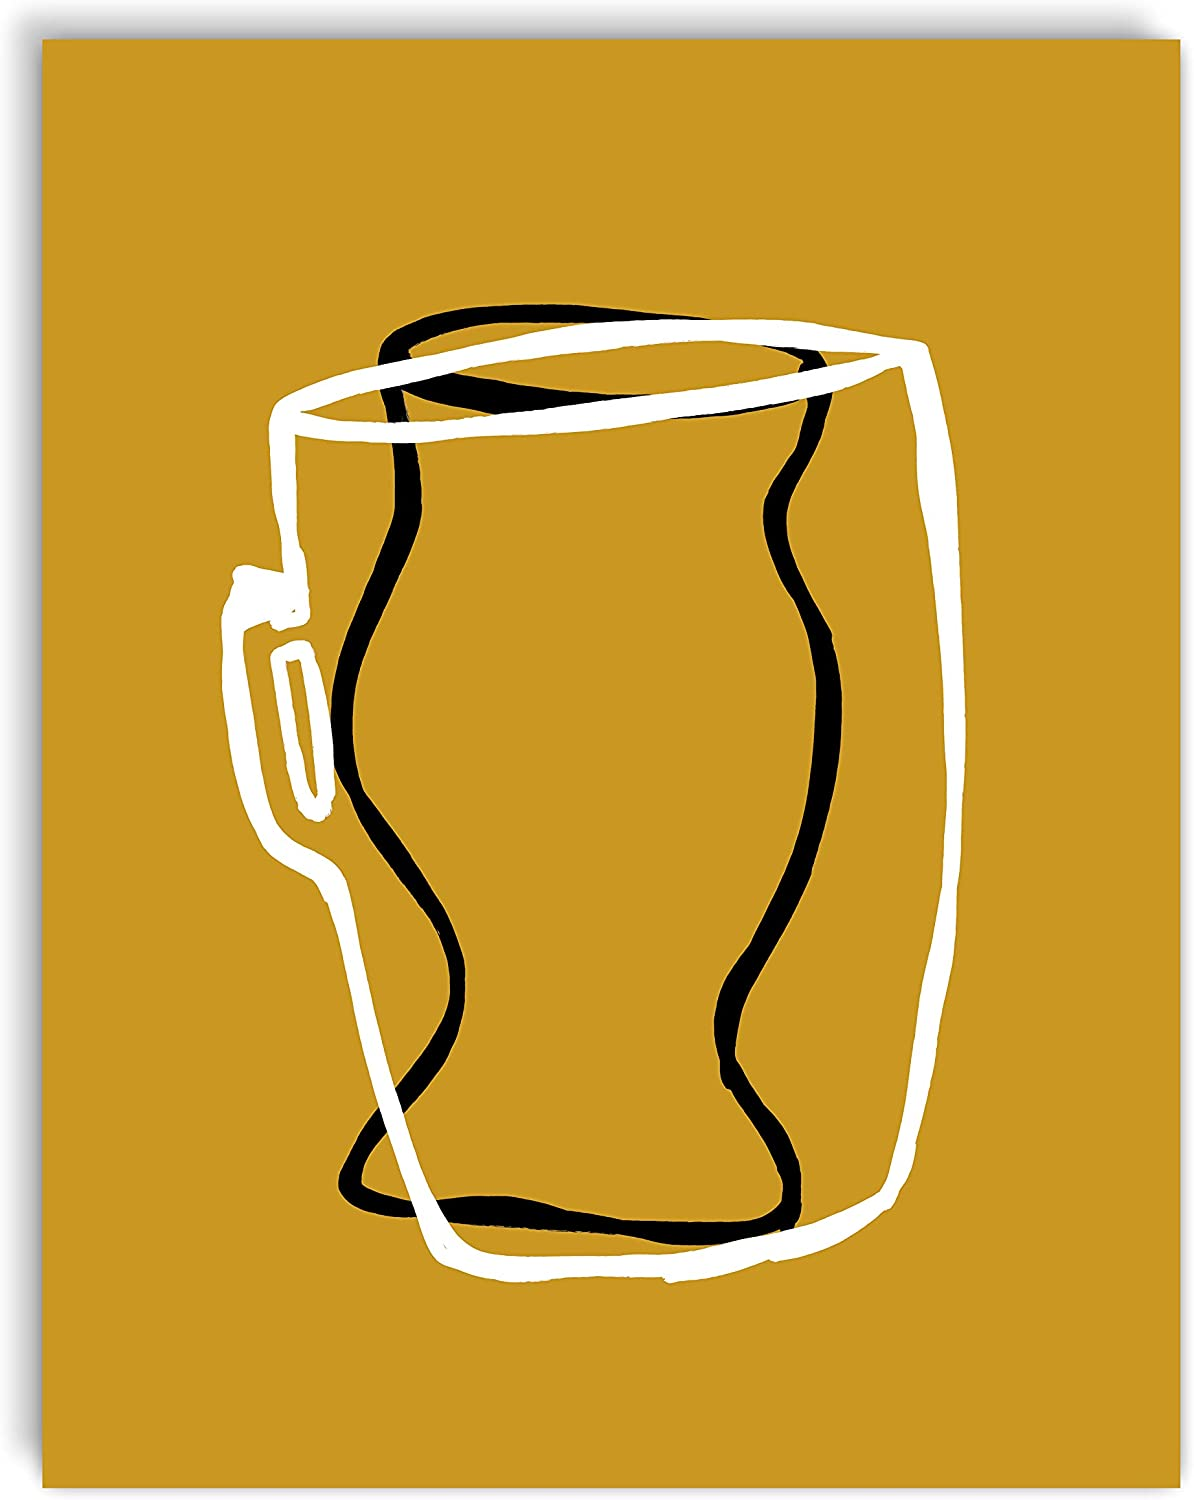 Printsmo, Bowl with Handle and Vase, Minimalist Modern Abstract Art Print Poster, Contemporary Wall Art for Home Decor 11x14 inches, Unframed (Gold)